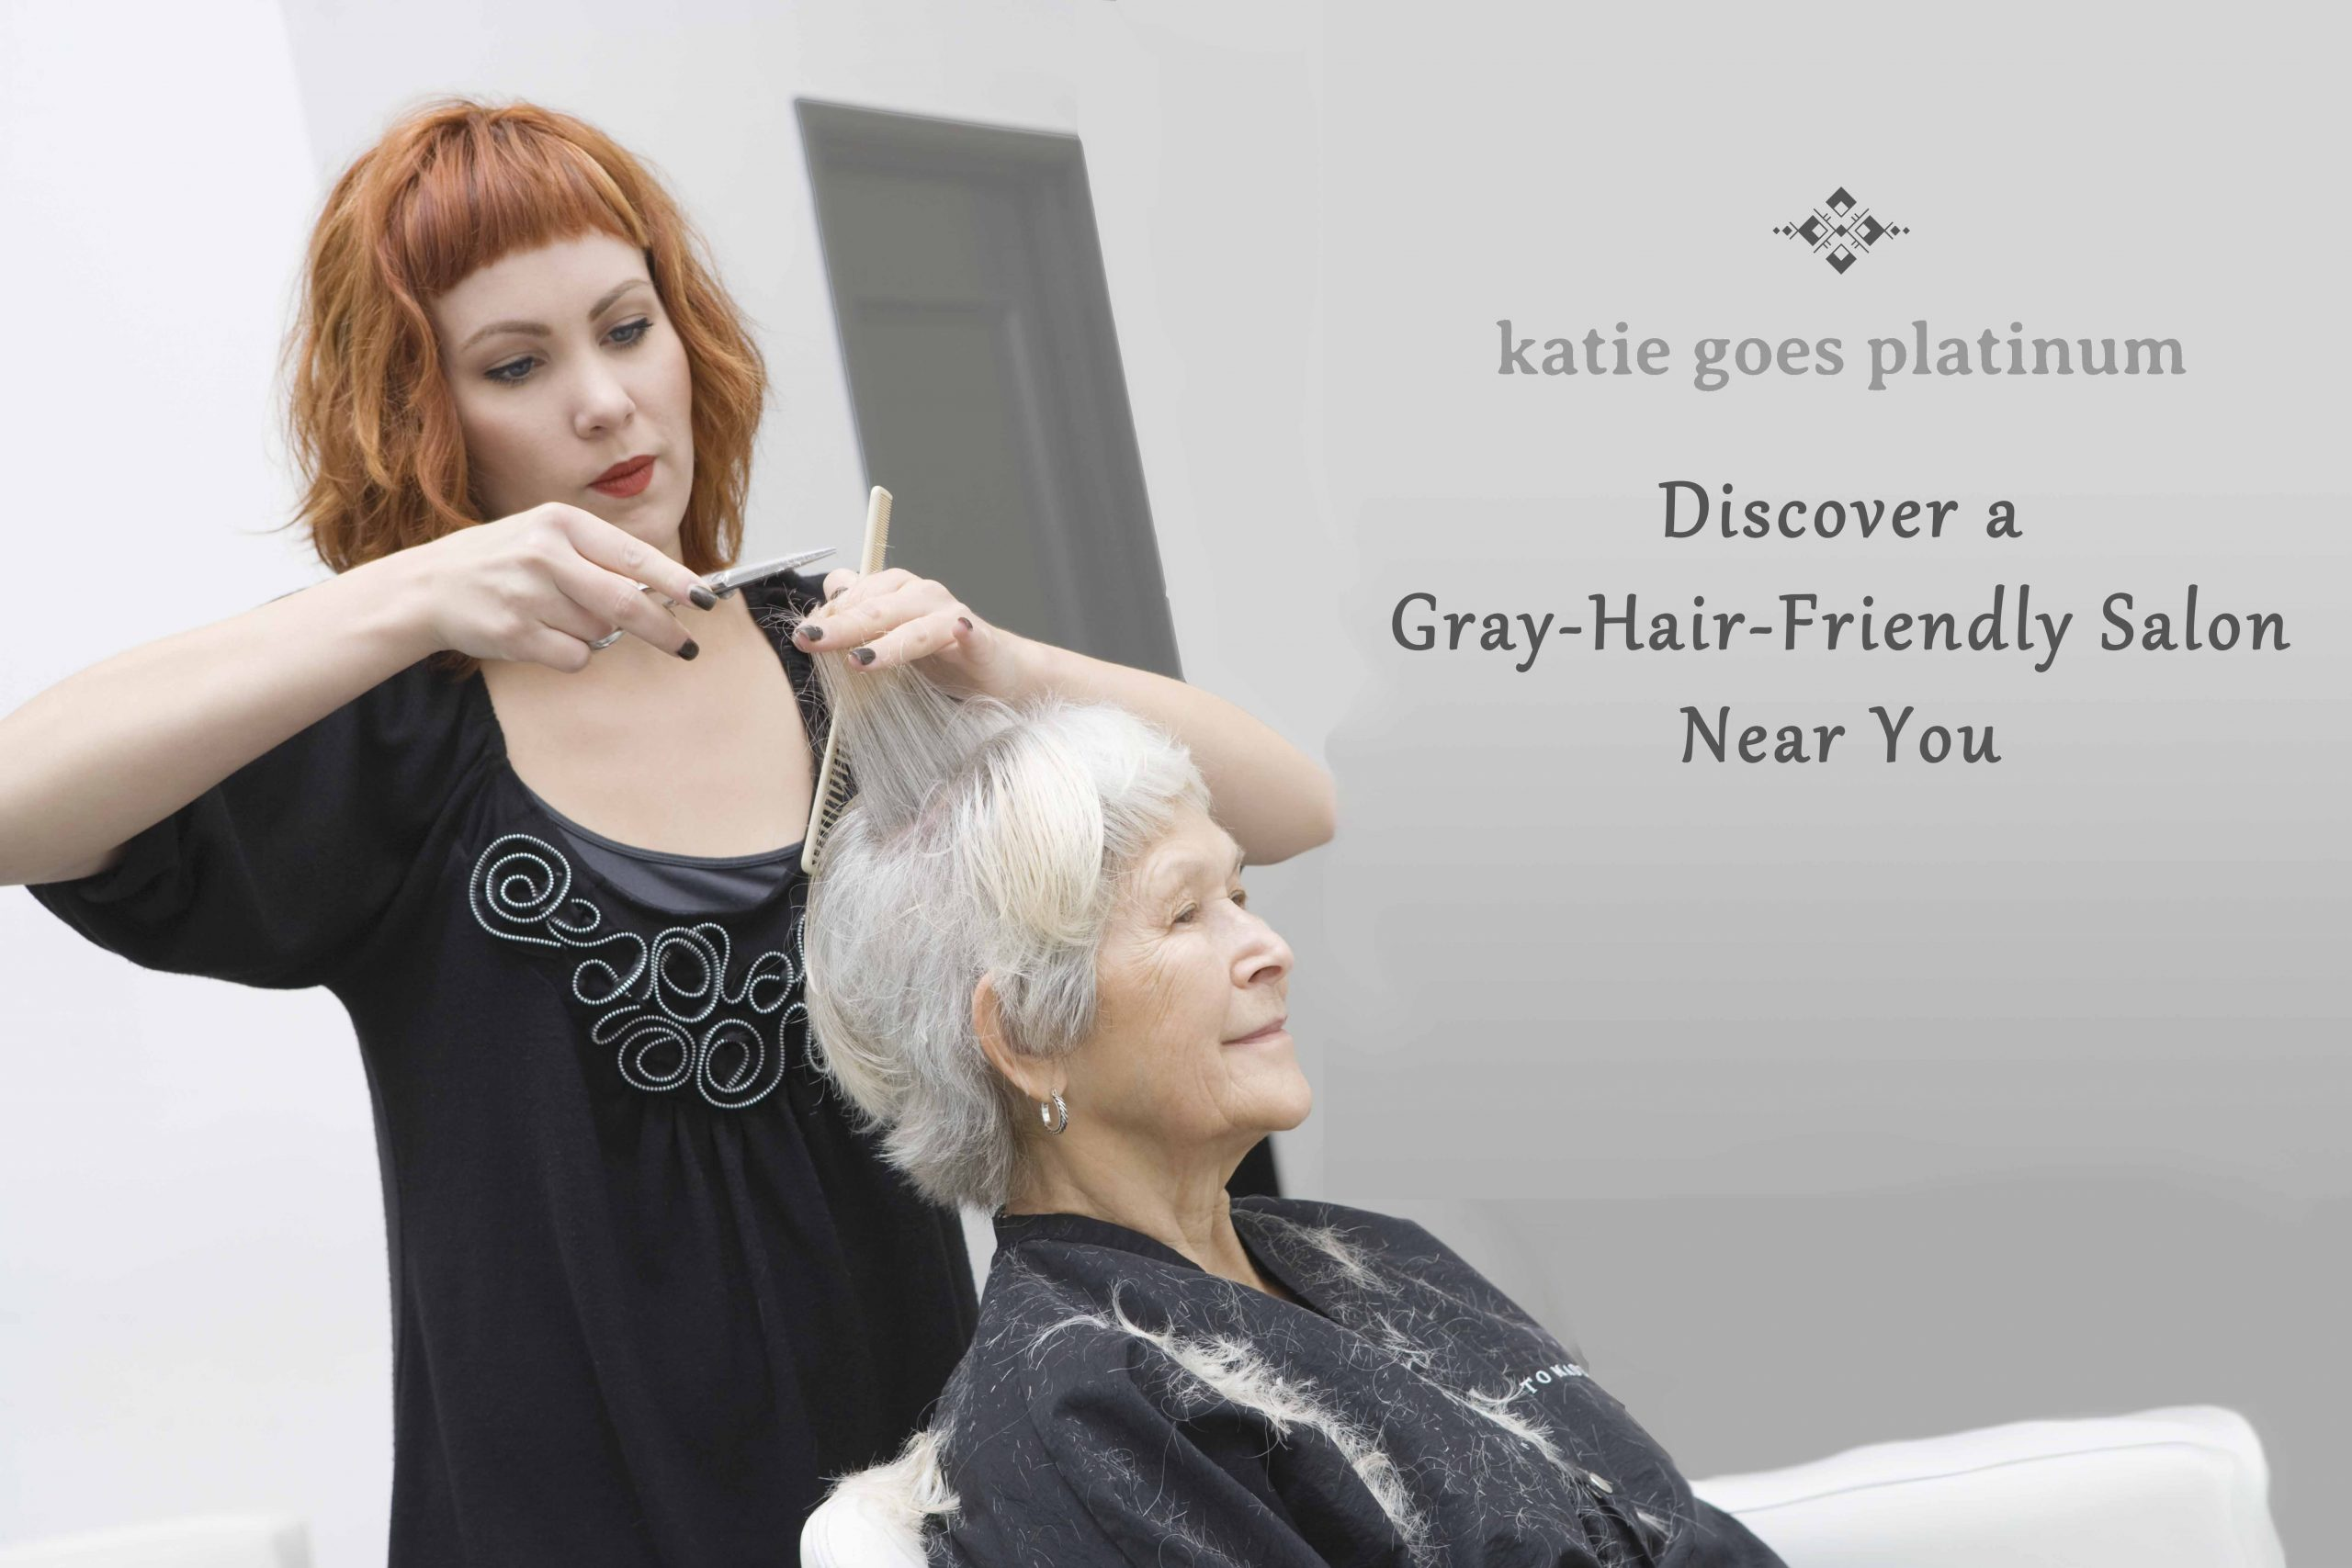 Salons Specializing in Gray Hair Directory feature image